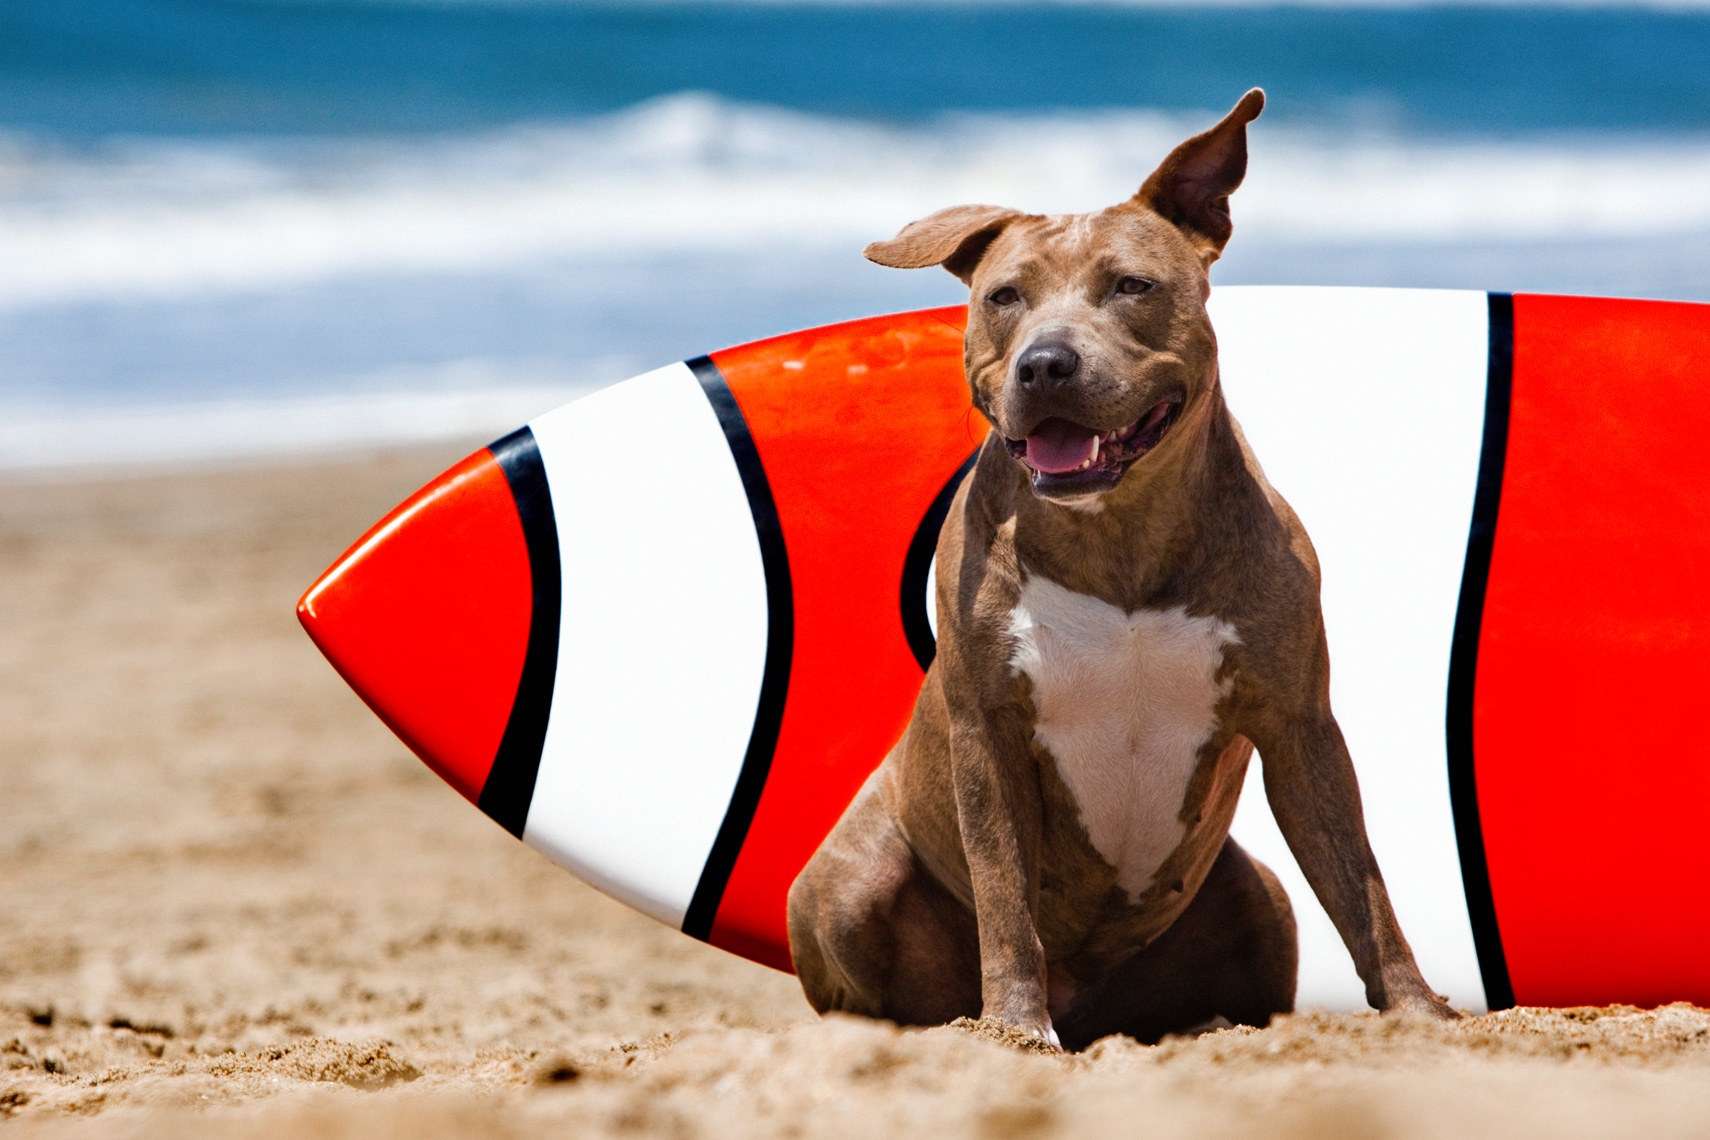 Los Angeles Dog Photography, Michael Brian, Pit Bull and surfborad on beach, Huntington Beach, California Dog Beach, Cesarsway Magazine